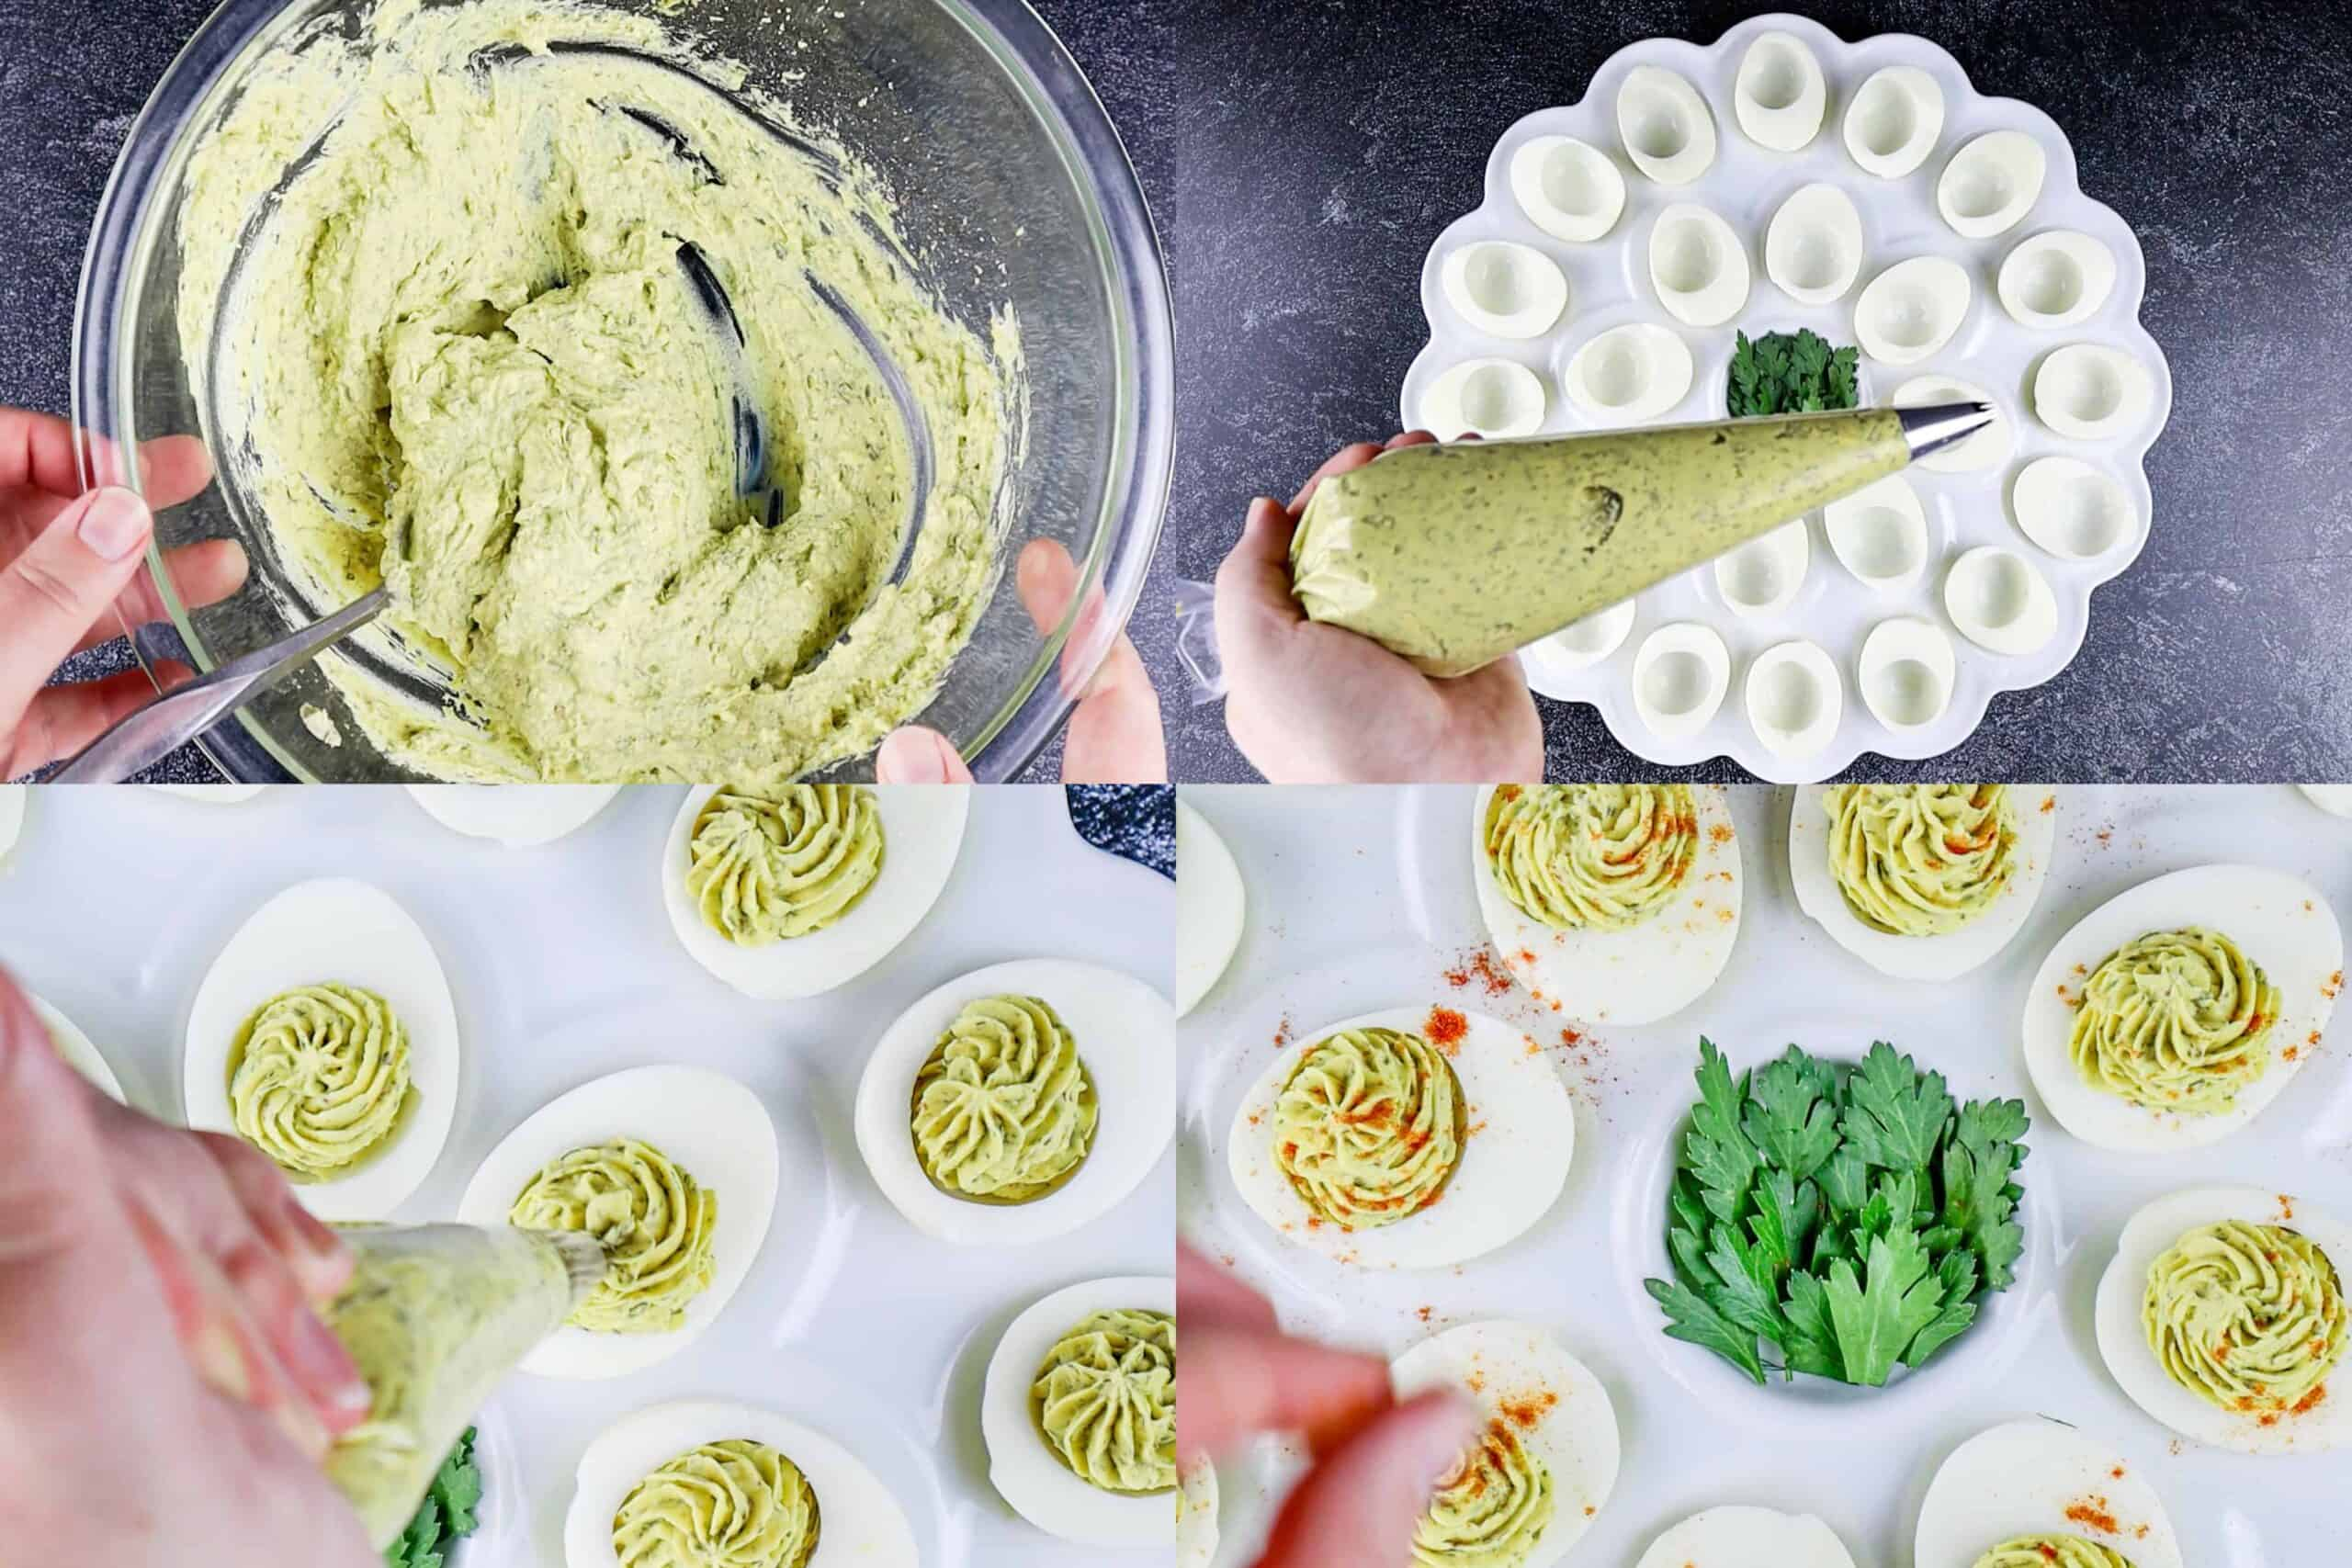 deviled eggs process shots- adding the filing